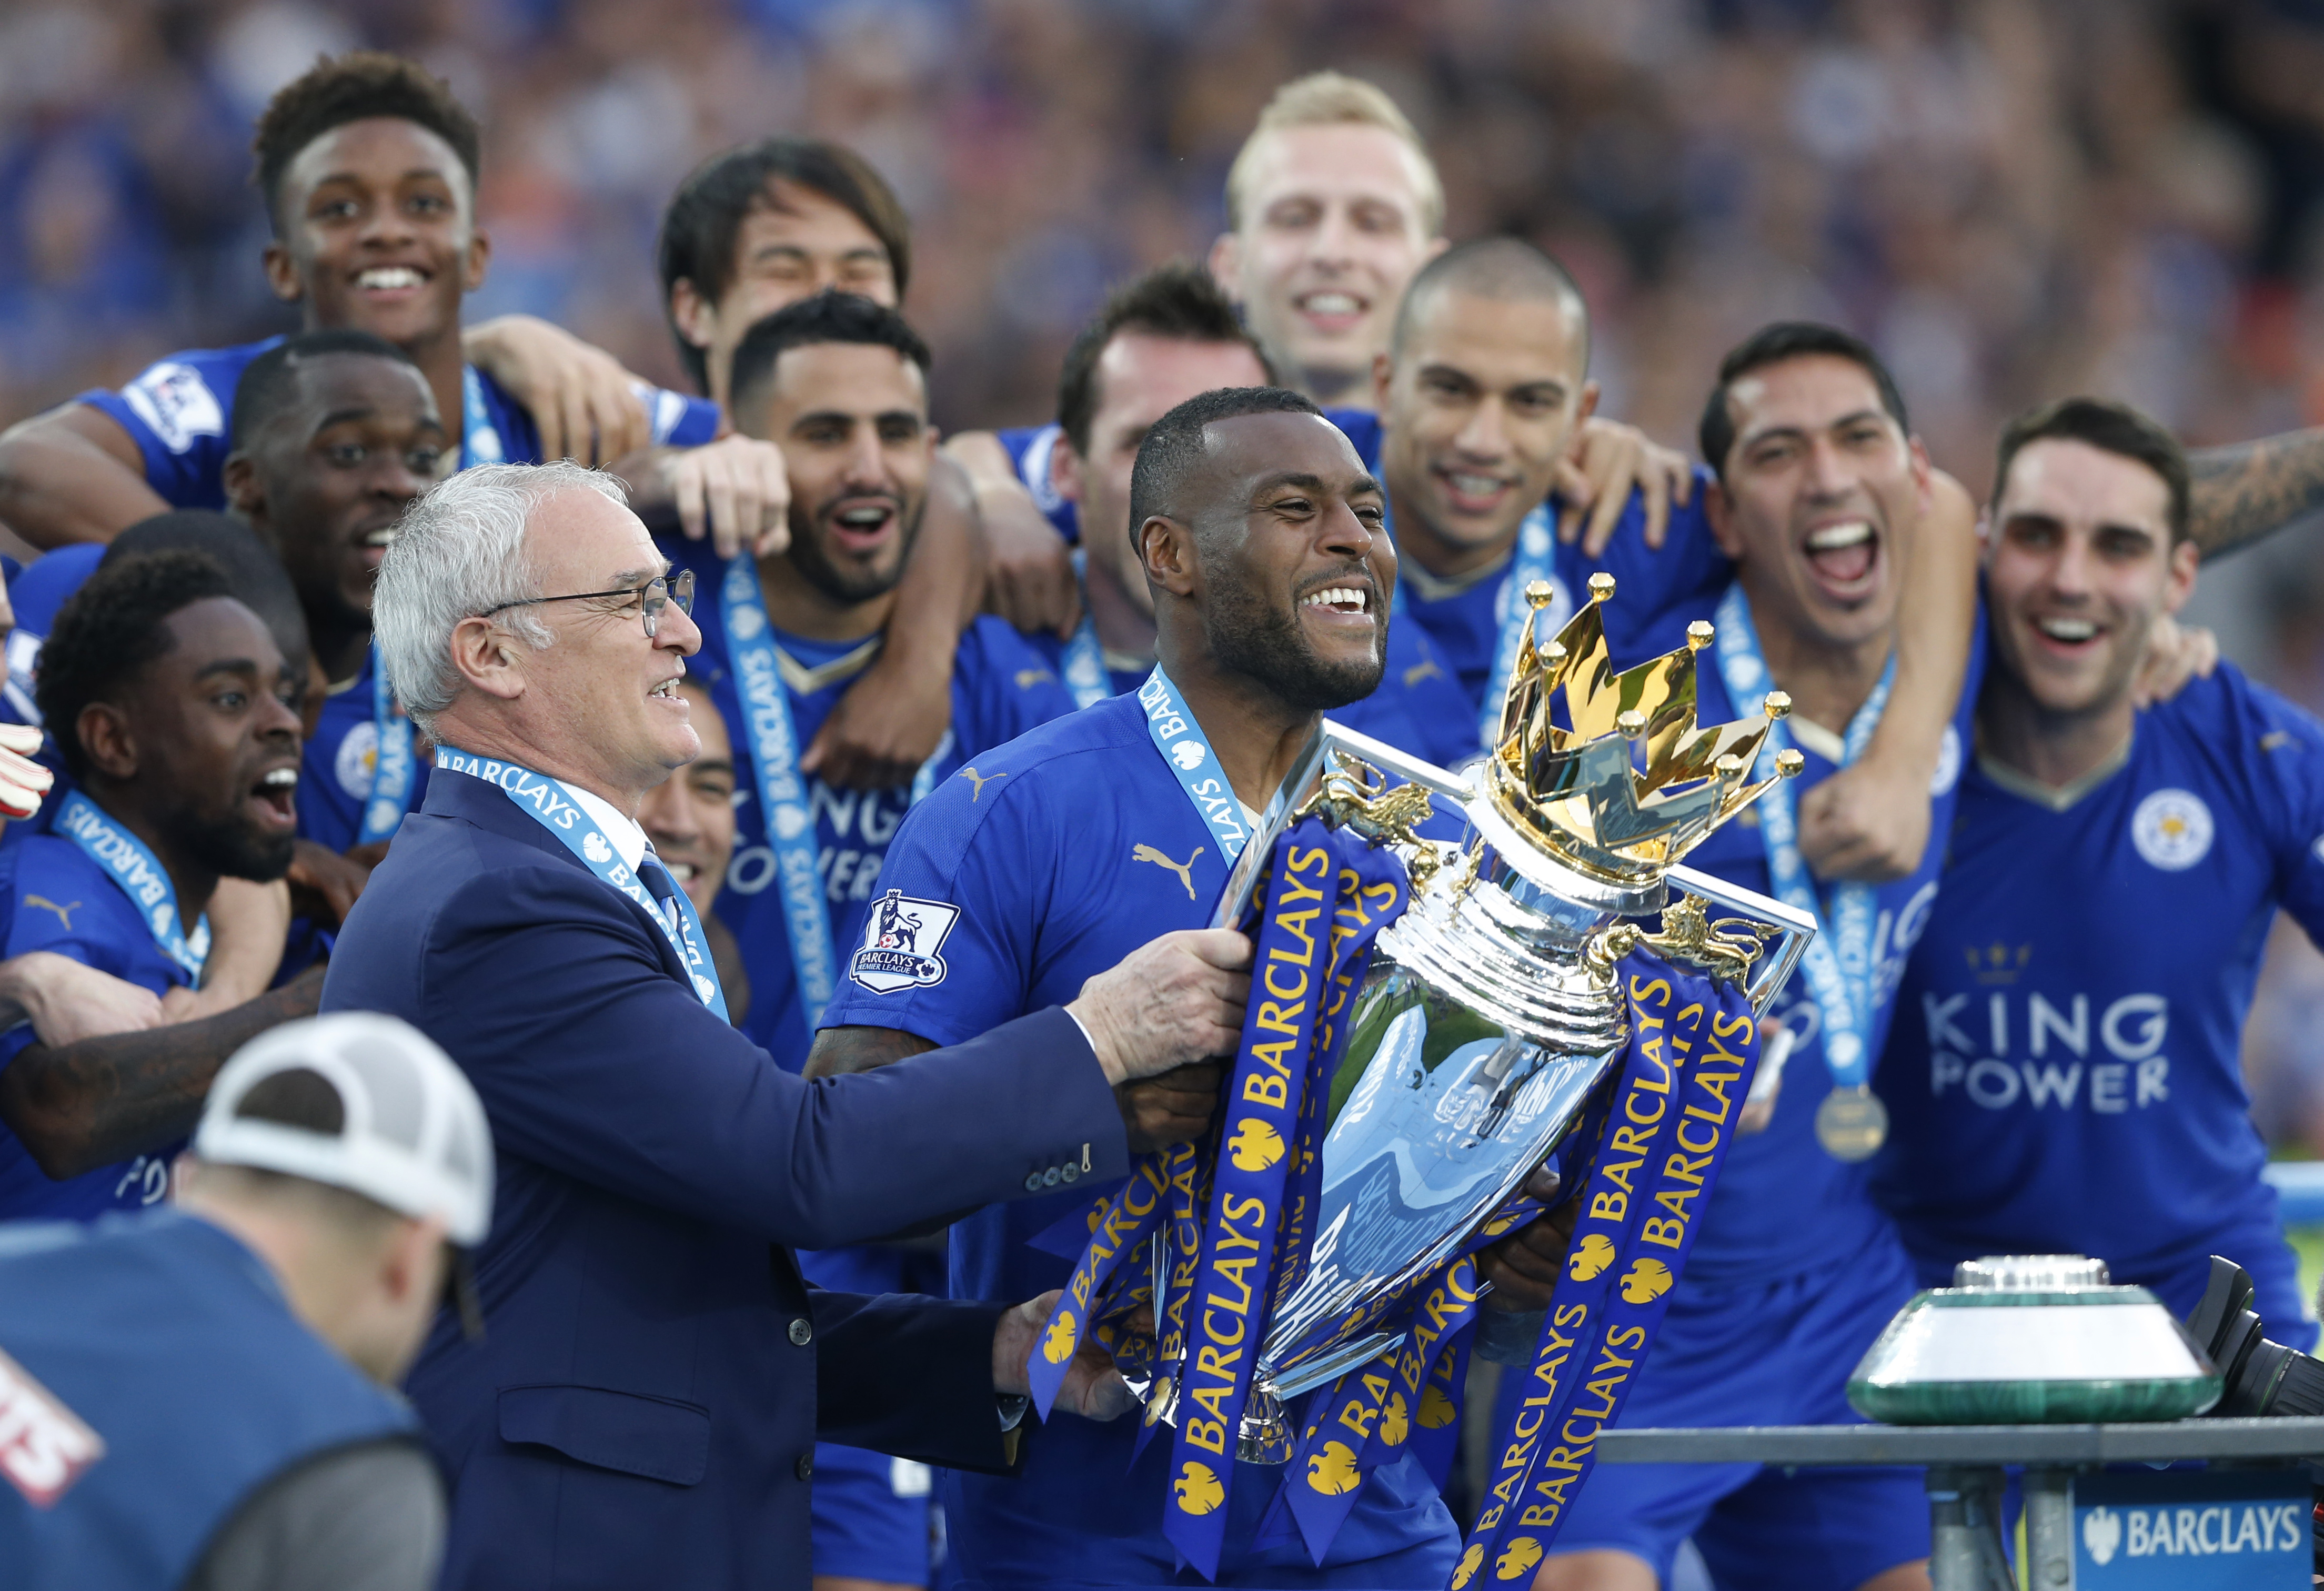 """Britain Soccer Football - Leicester City v Everton - Barclays Premier League - King Power Stadium - 7/5/16 Leicester City's Wes Morgan and manager Claudio Ranieri lift the trophy as they celebrate winning the Barclays Premier League Action Images via Reuters / Carl Recine Livepic EDITORIAL USE ONLY. No use with unauthorized audio, video, data, fixture lists, club/league logos or """"live"""" services. Online in-match use limited to 45 images, no video emulation. No use in betting, games or single club/league/player publications. Please contact your account representative for further details."""